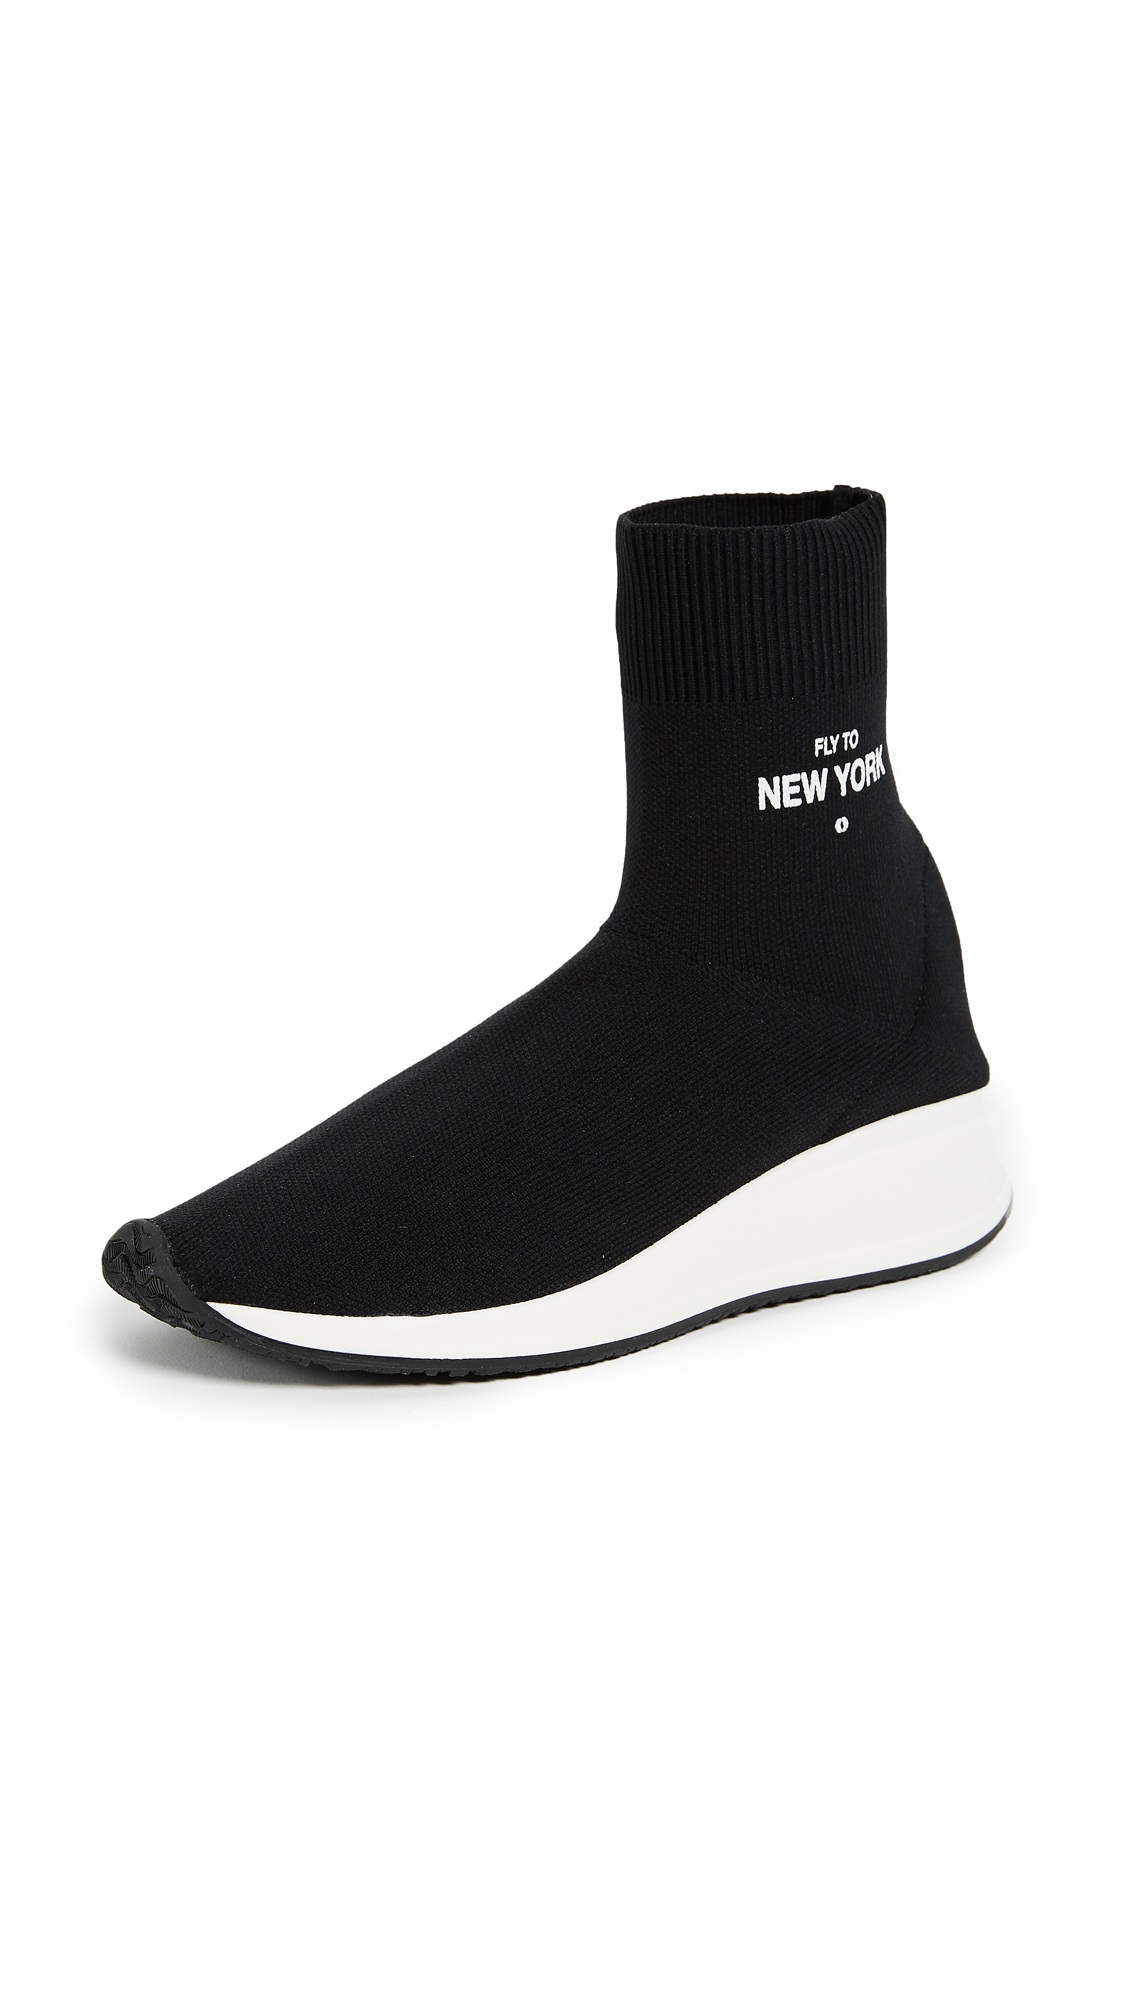 Joshua Sanders Fly to New York Sock Sneakers - Black